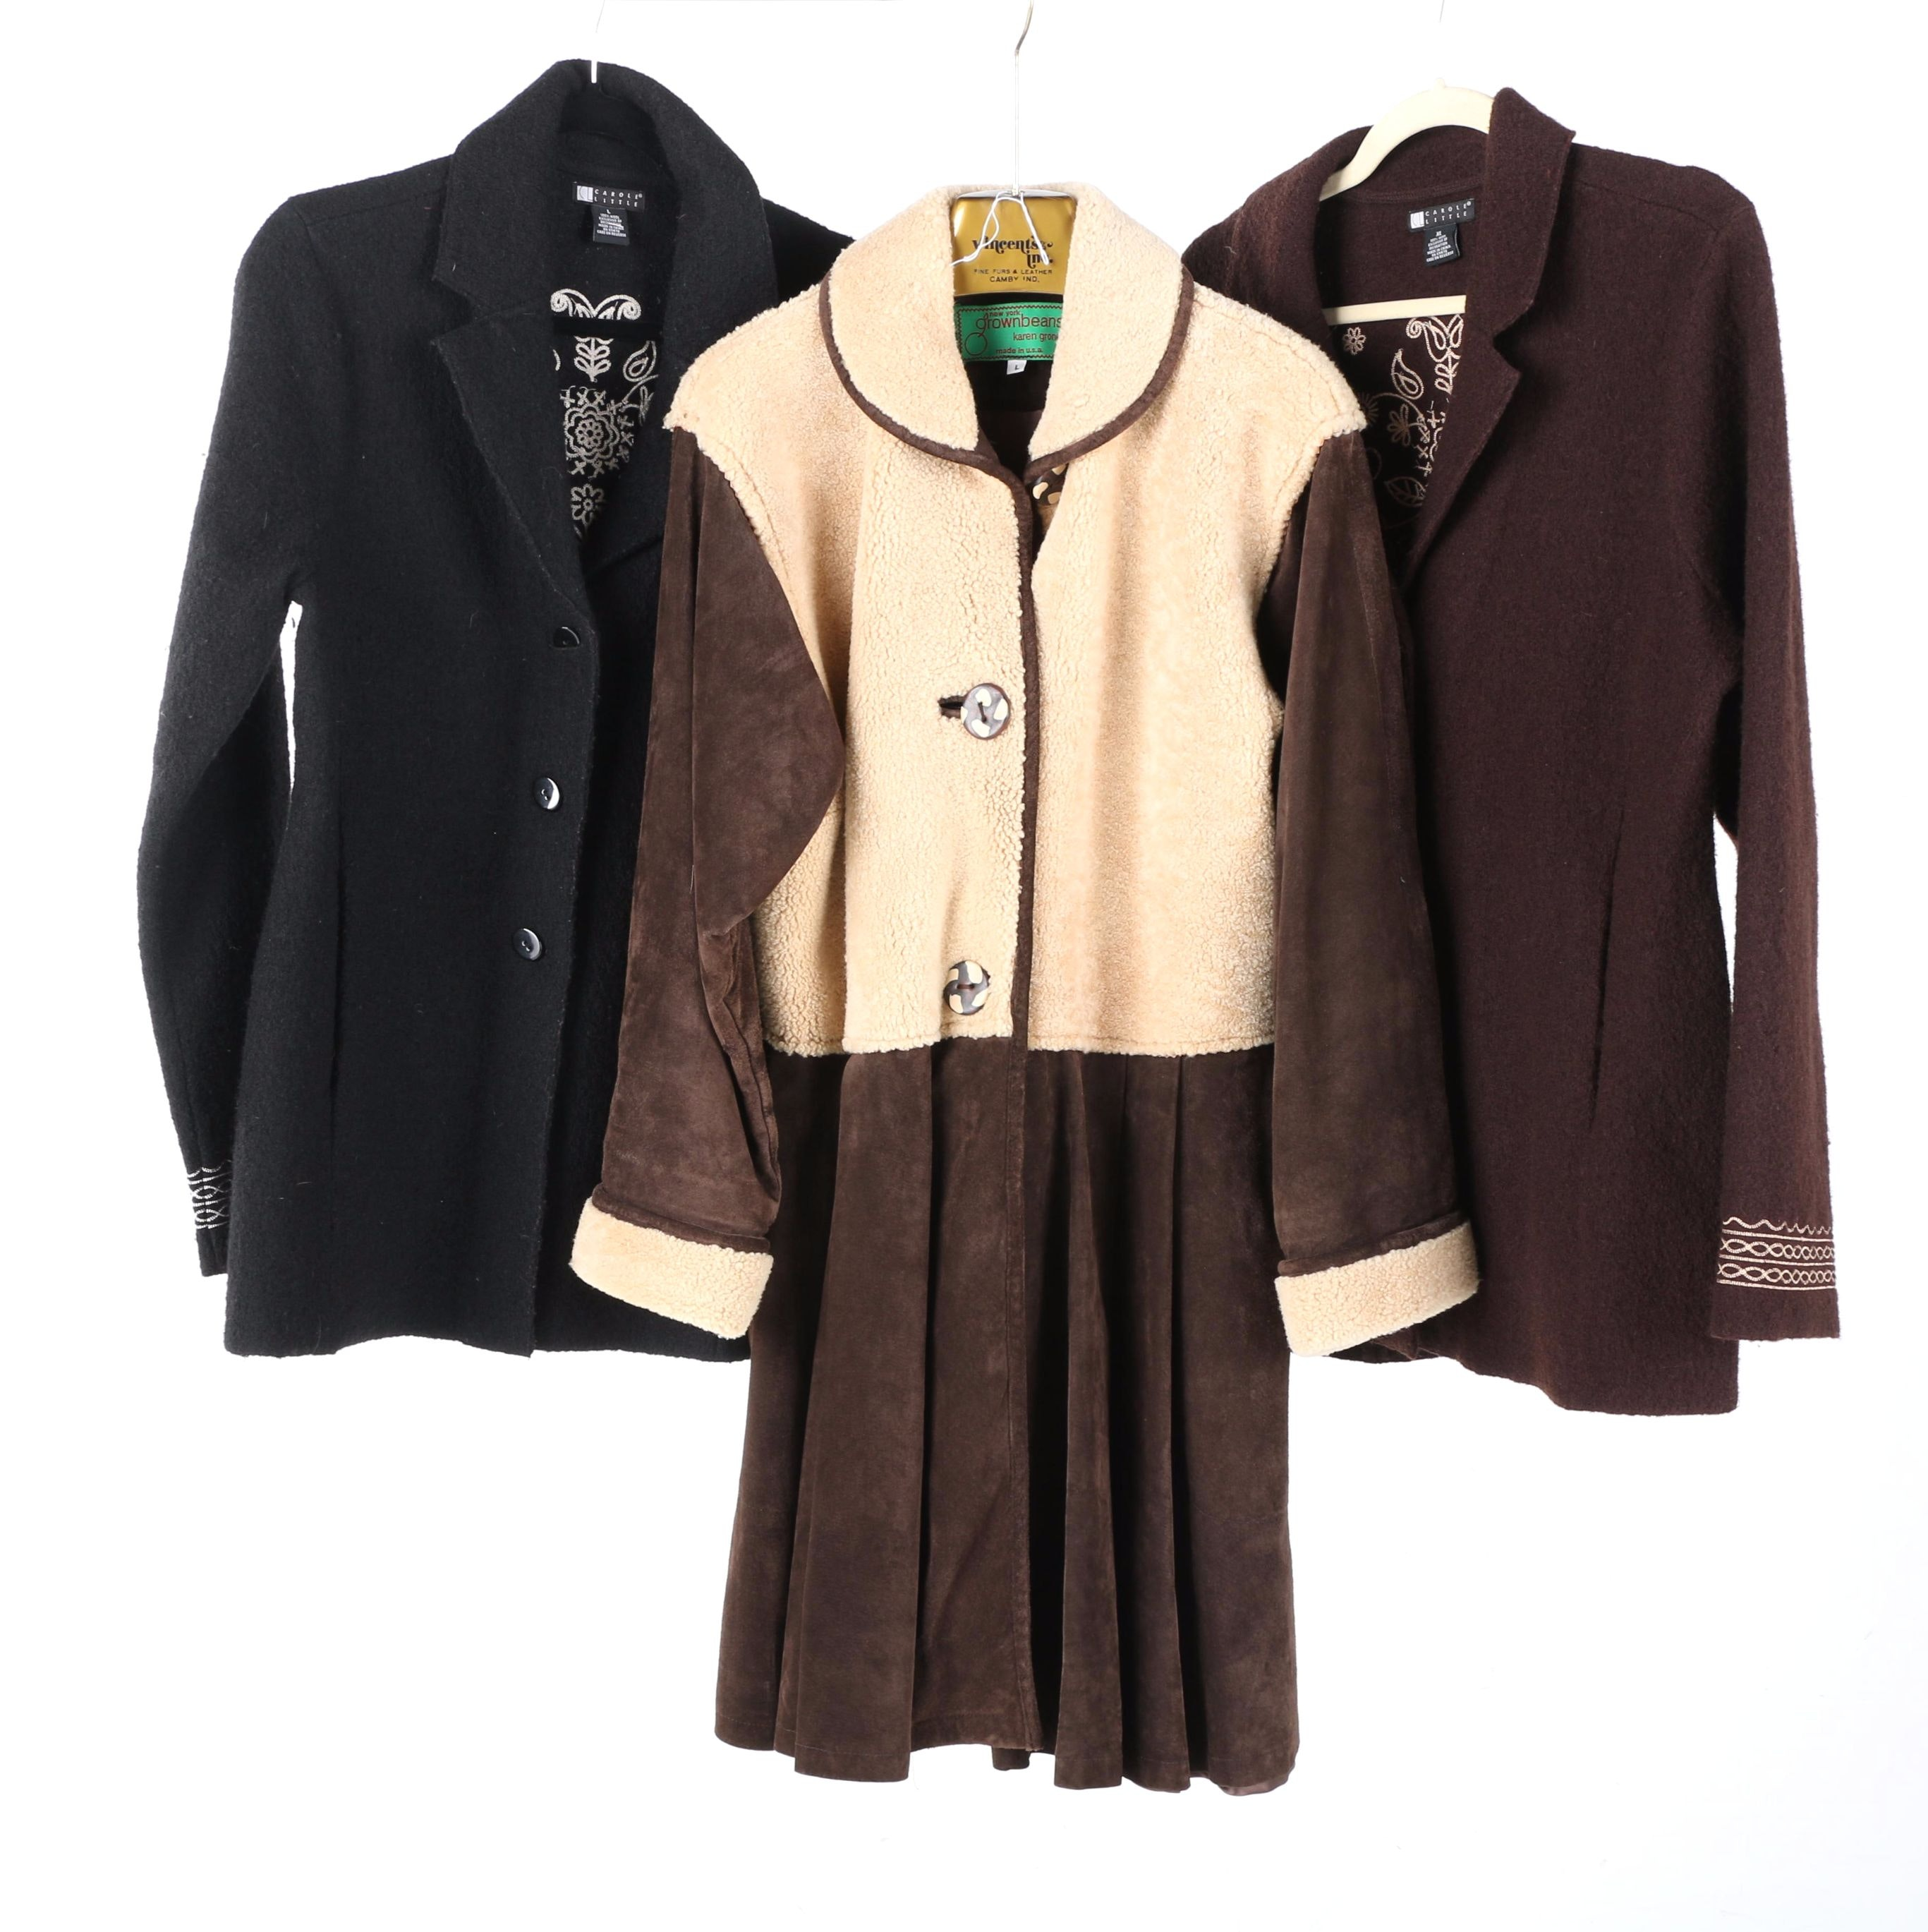 Women's Coats Including Grownbeans